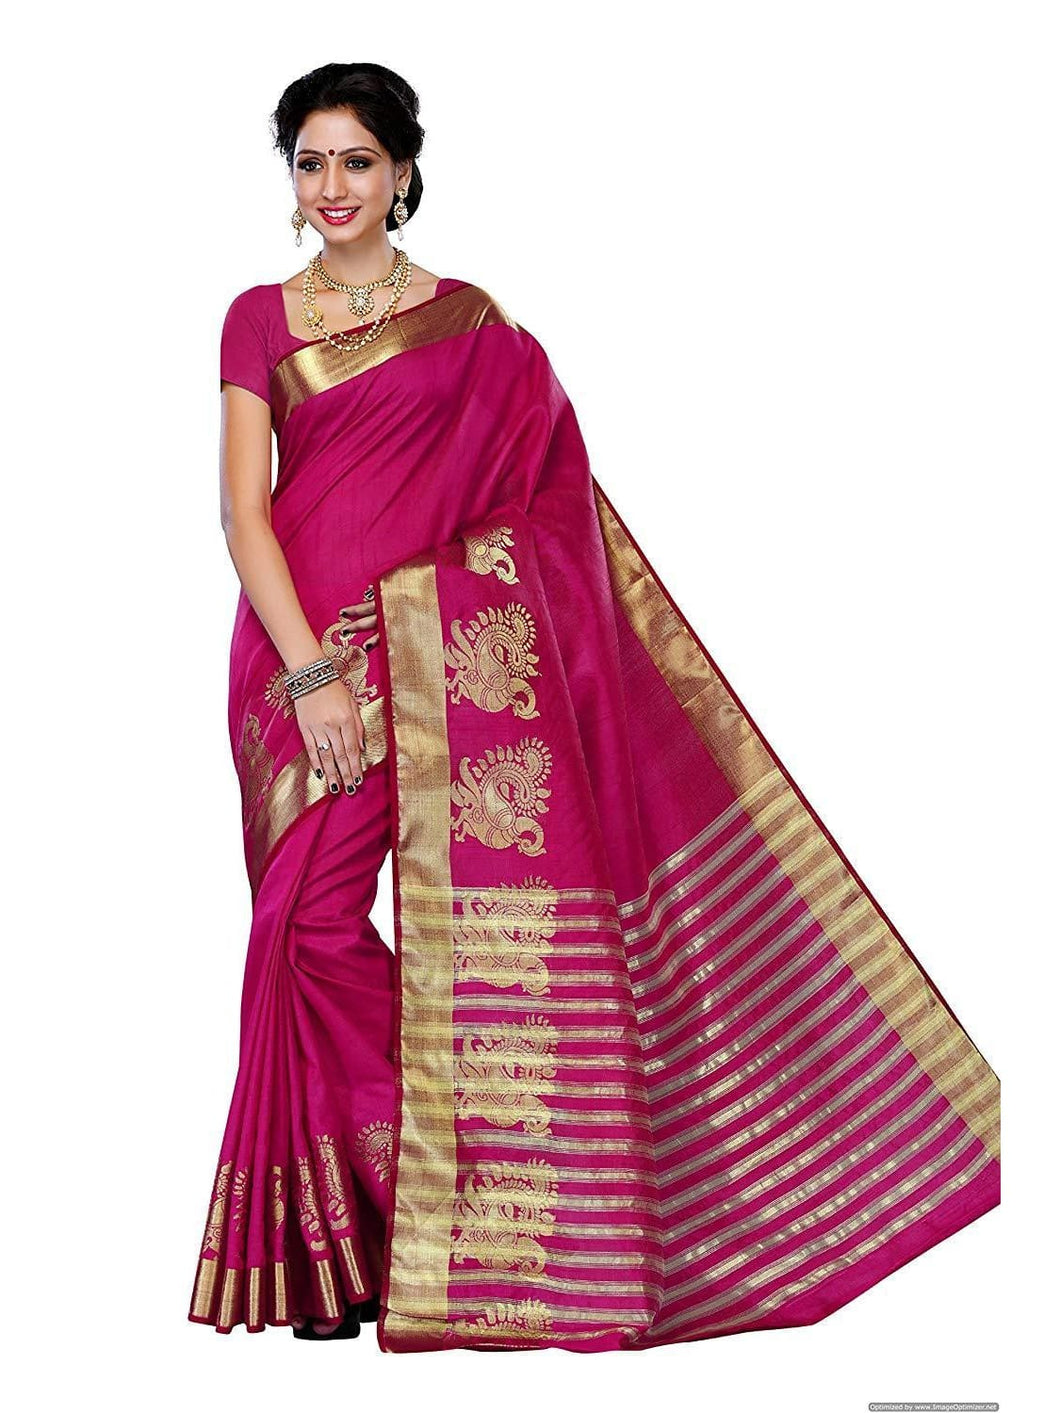 Mimosa women's tassar silk saree with blouse